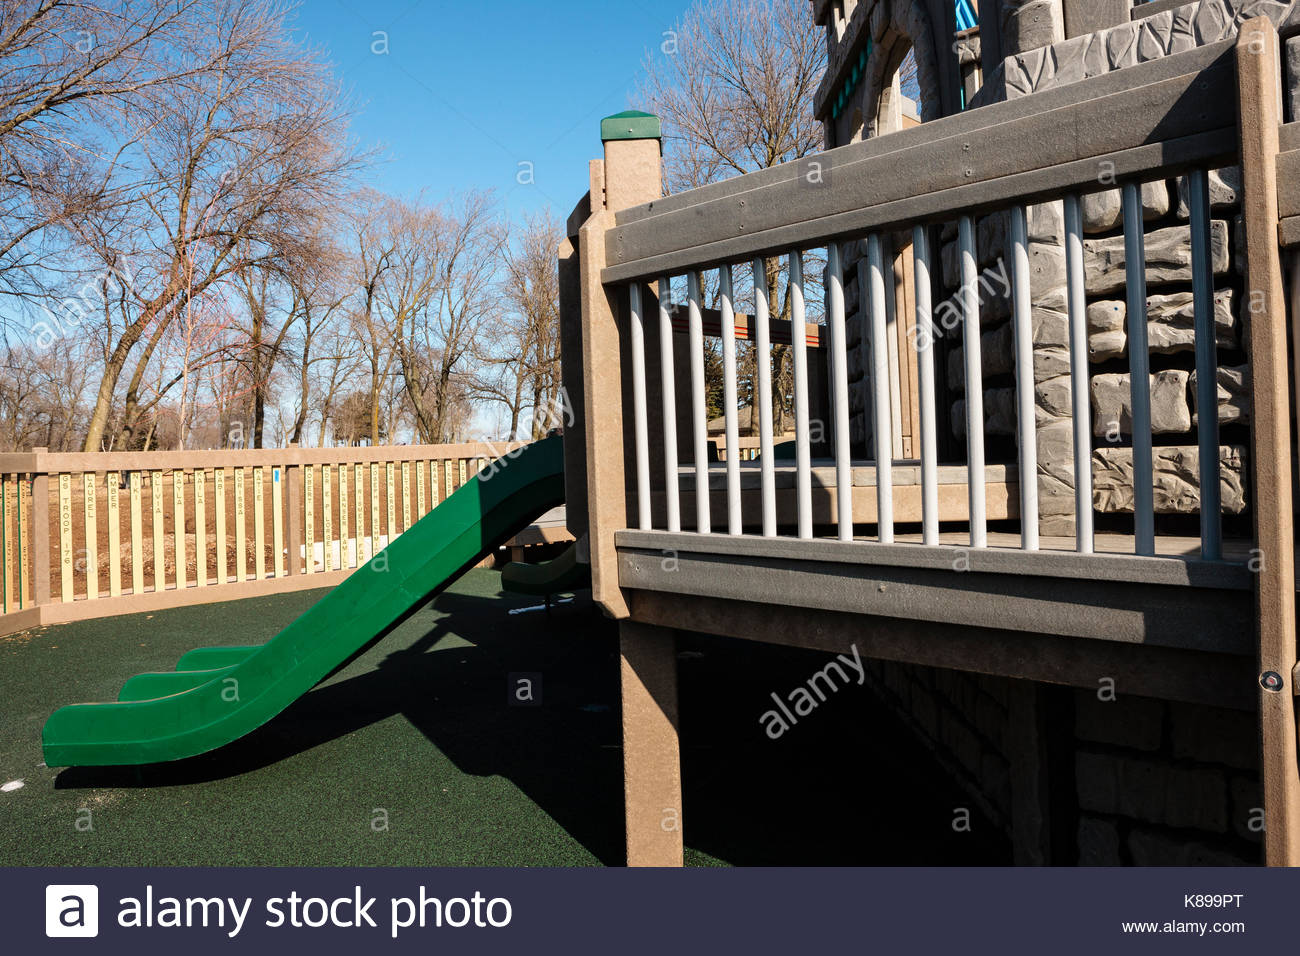 Nautical theme 'Possibility Playground' a universally accessible playground for all children in Port Washington, - Stock Image